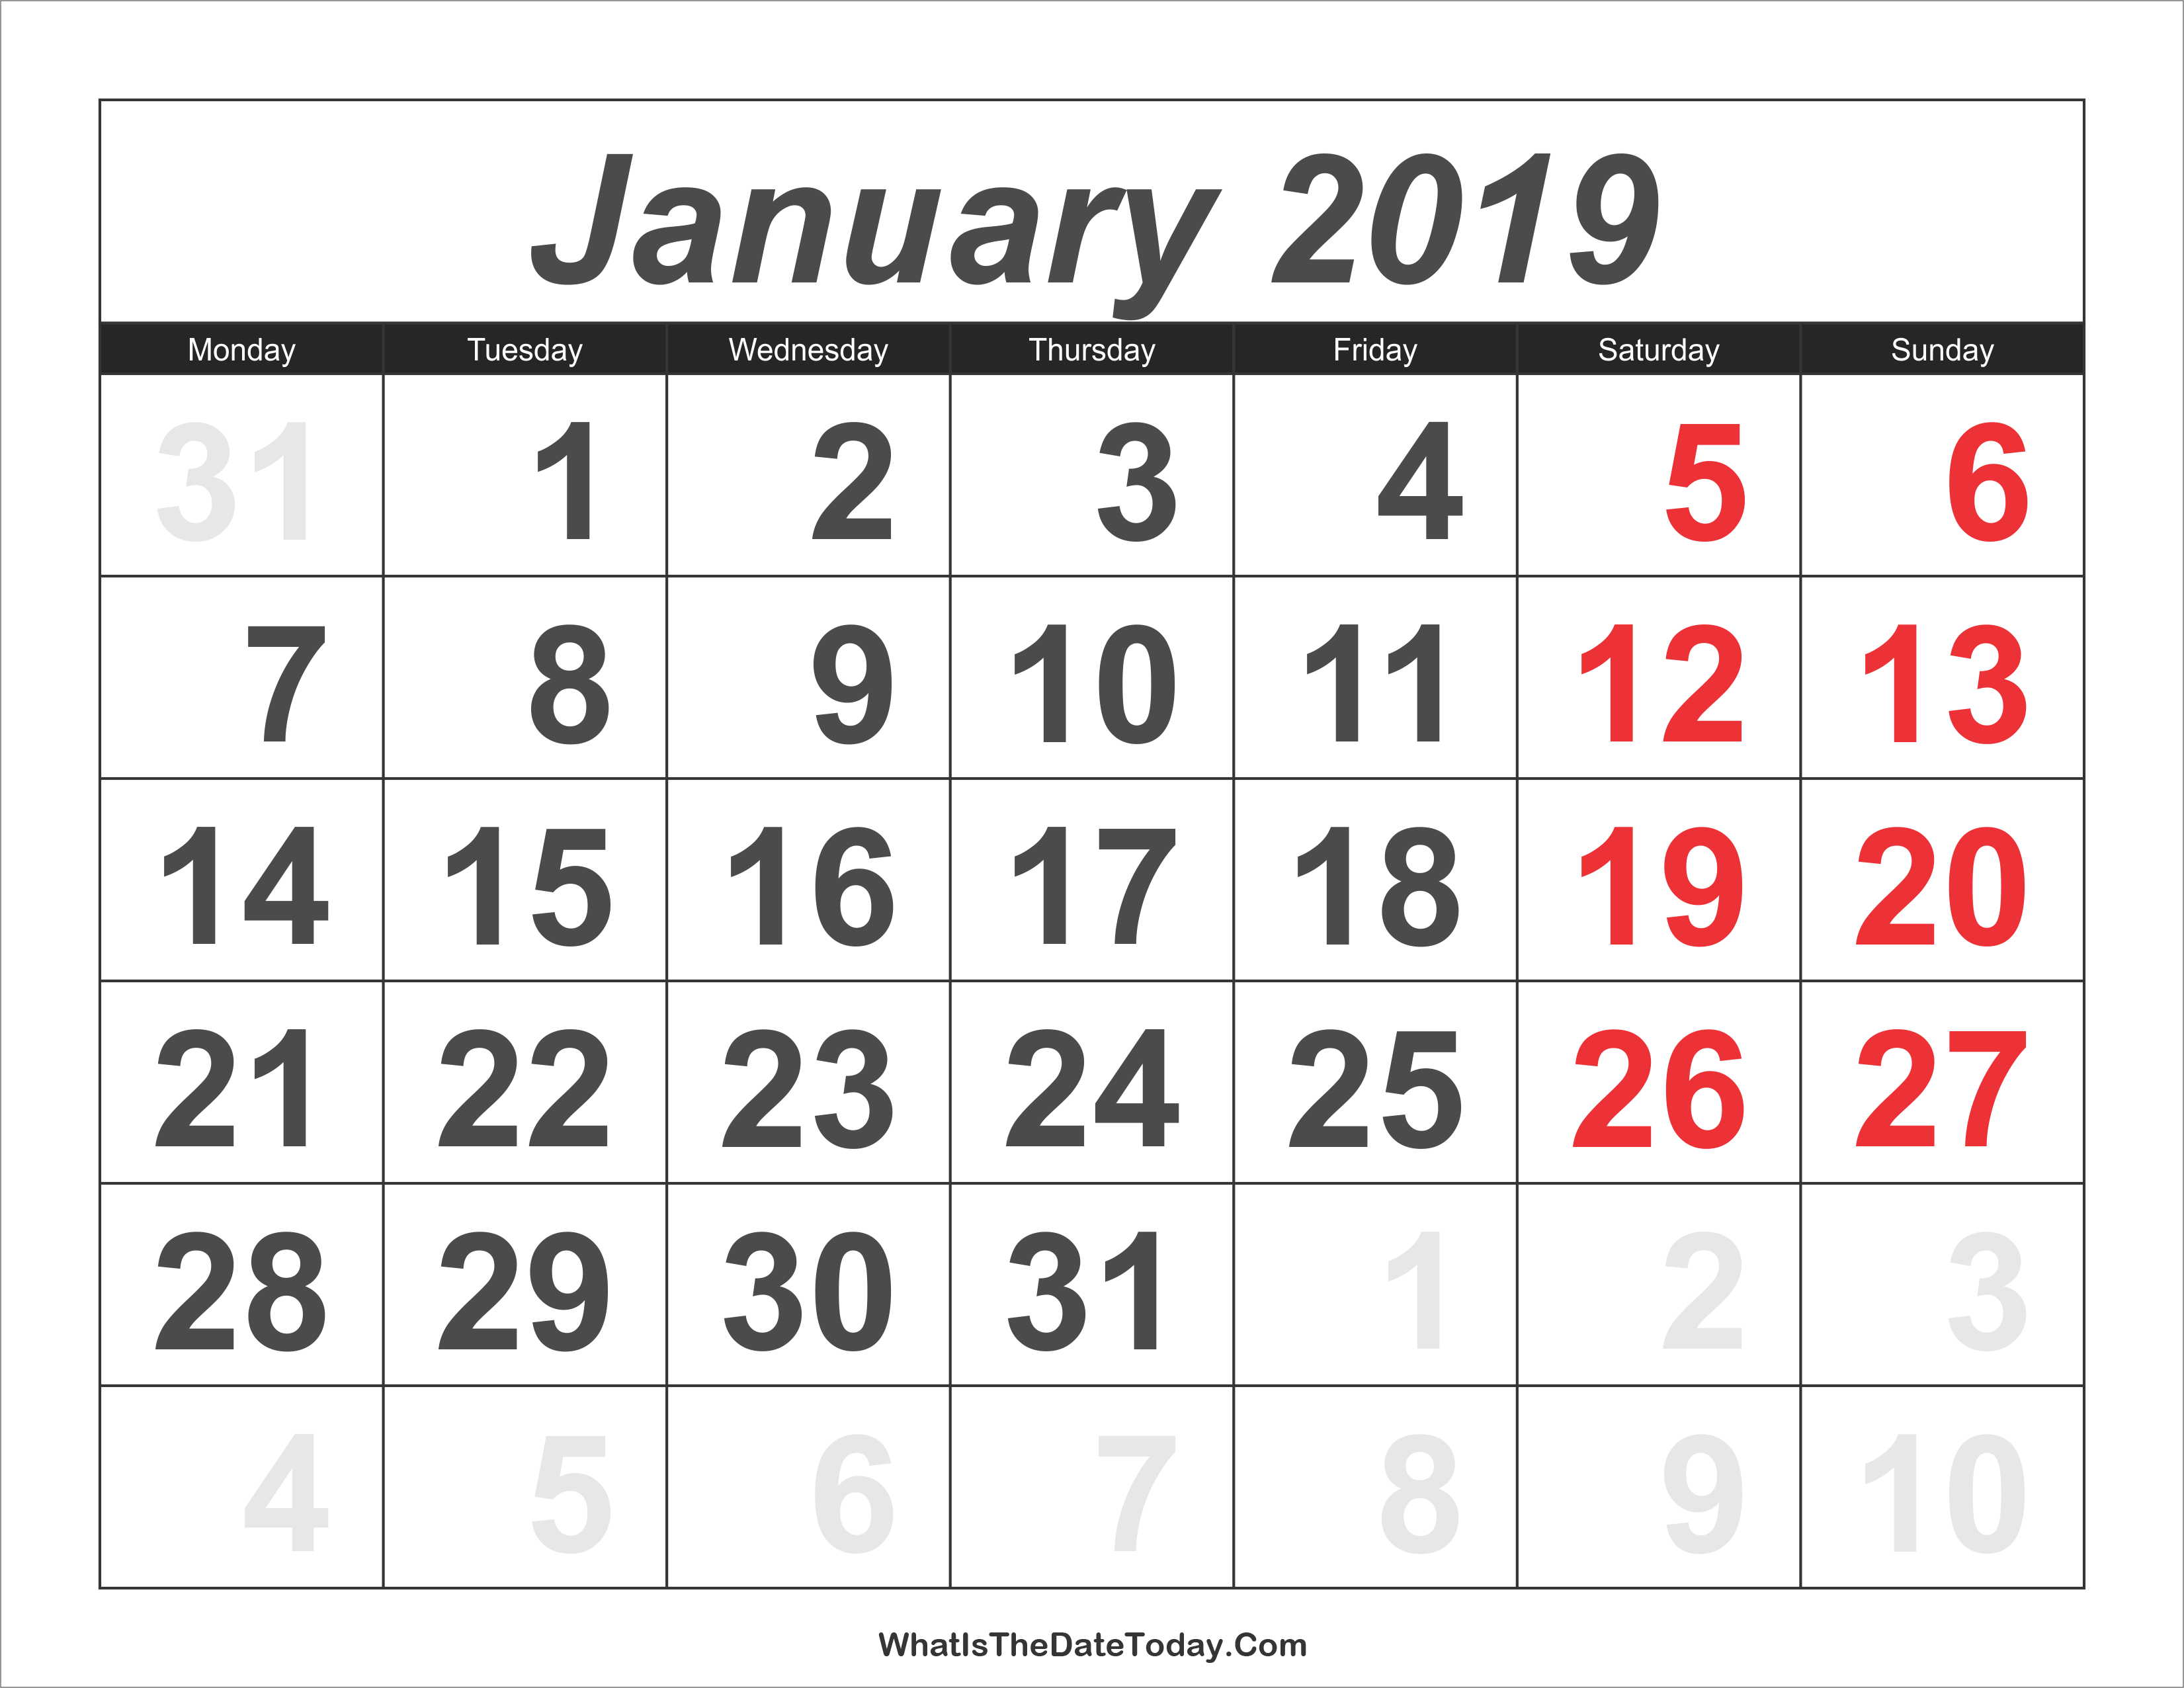 2019 Calendar January With Large Numbers Whatisthedatetoday Com